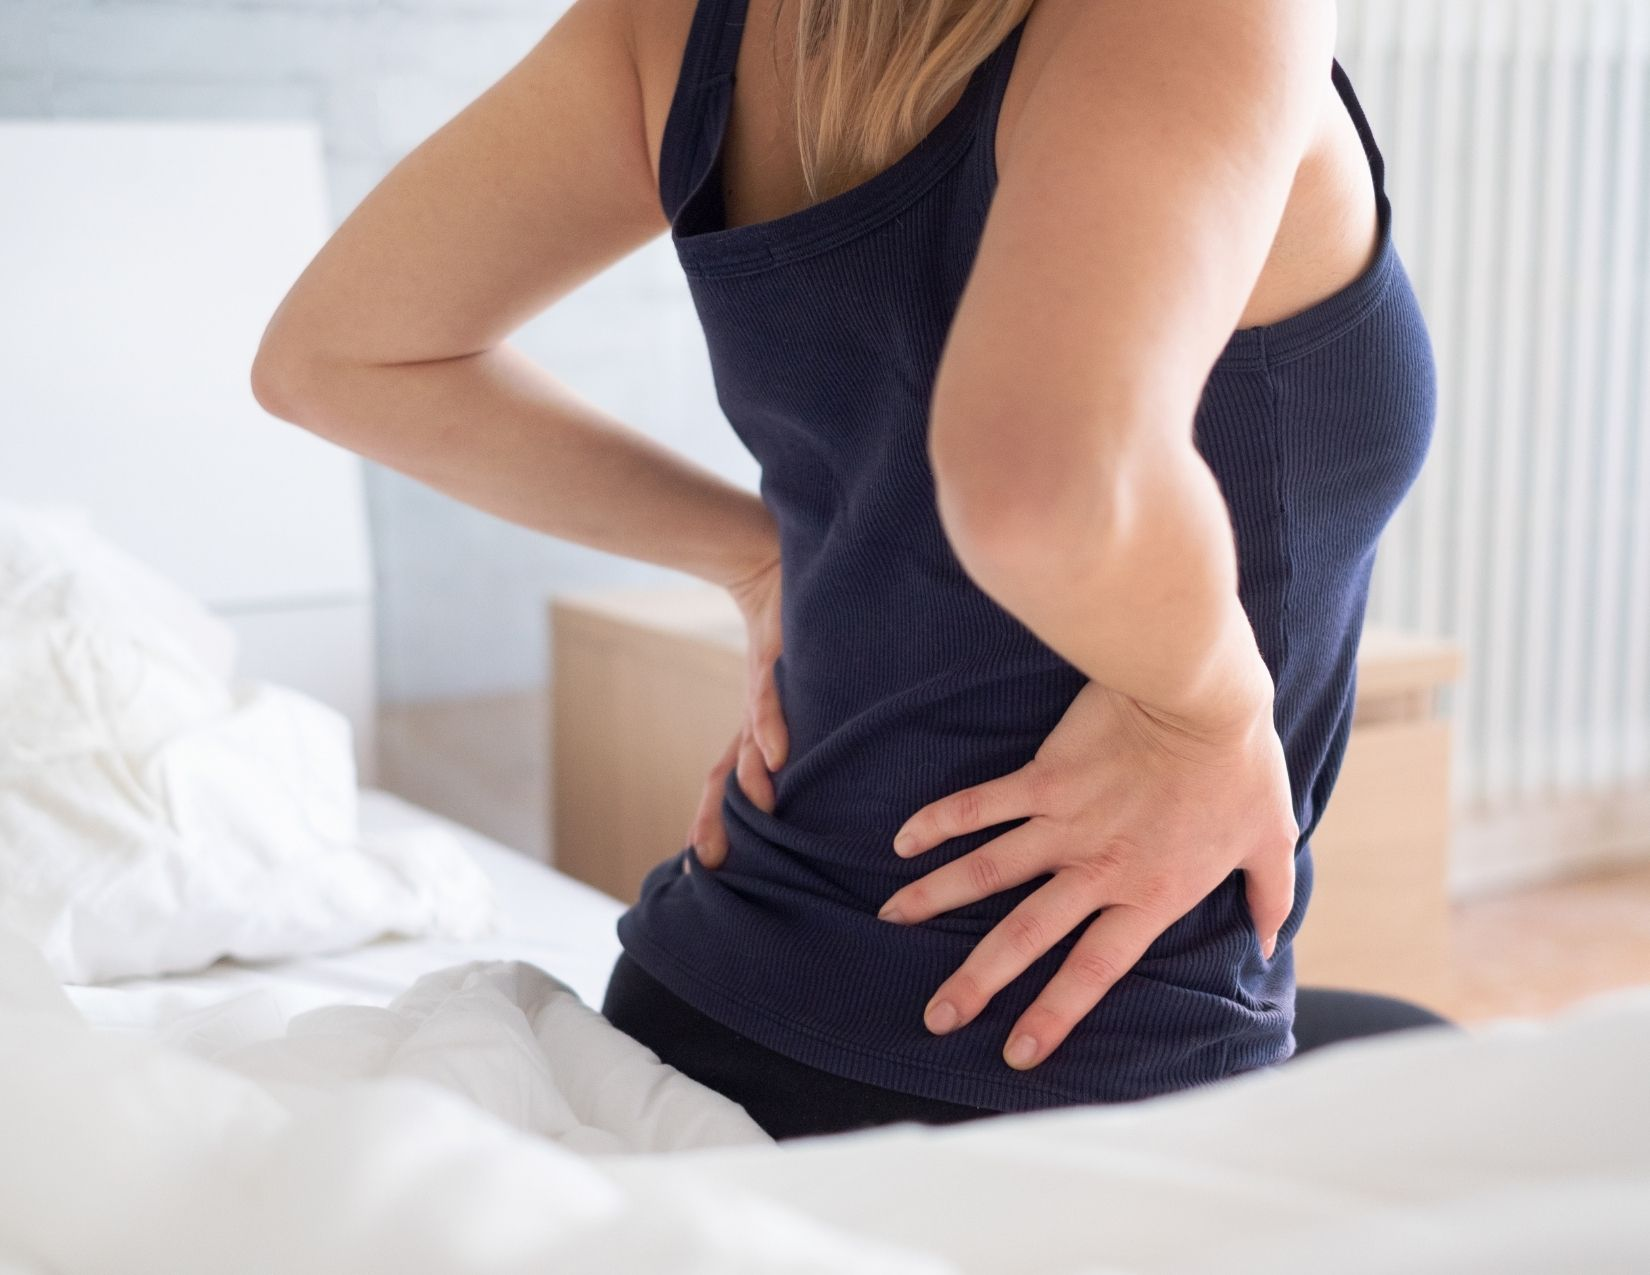 non-surgical spine and joint care